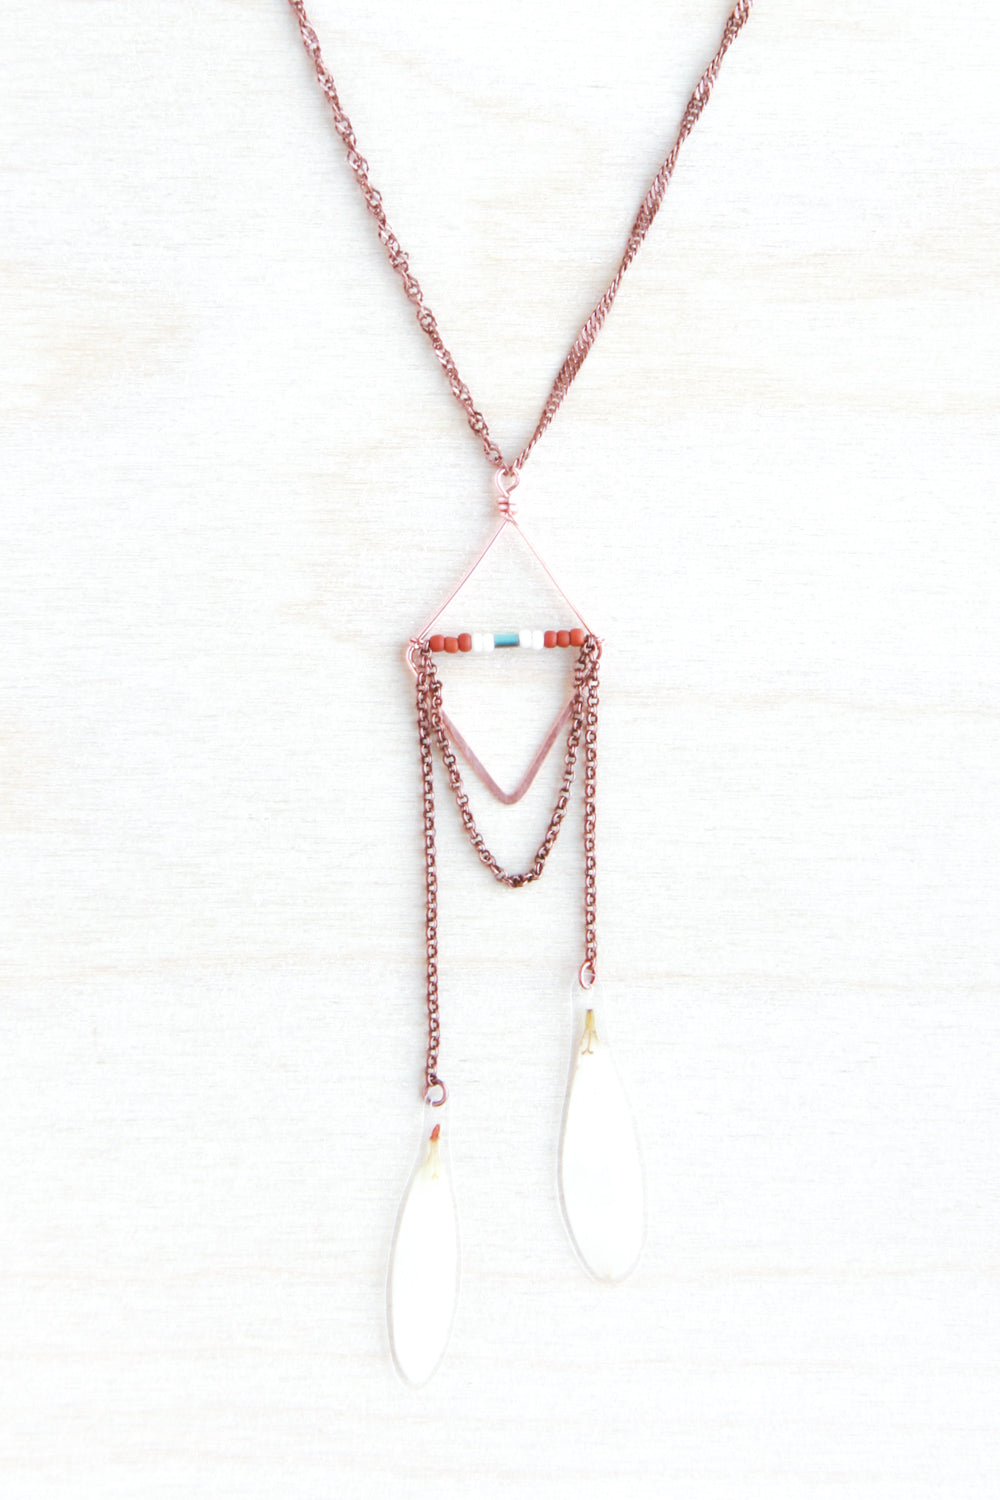 White Shasta Daisy Pressed Petal Necklace with Hammered Copper Diamond Hoop & Terracotta, Cream & Turquoise Glass Beads